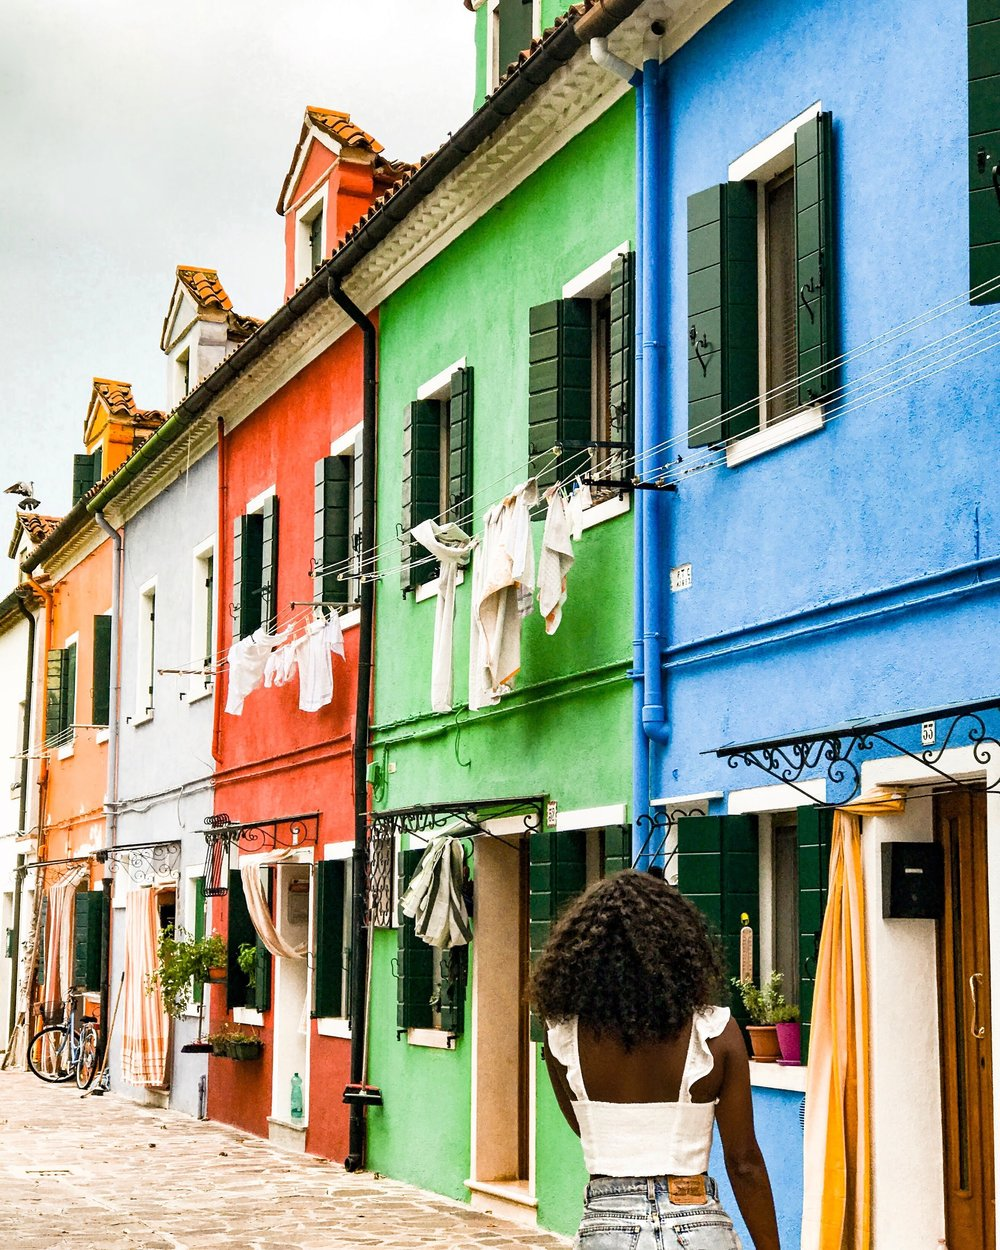 This photo was taken in Burano, Italy using an iPhone. I met a solo traveler on the bus ride there and we spent the entire day together.